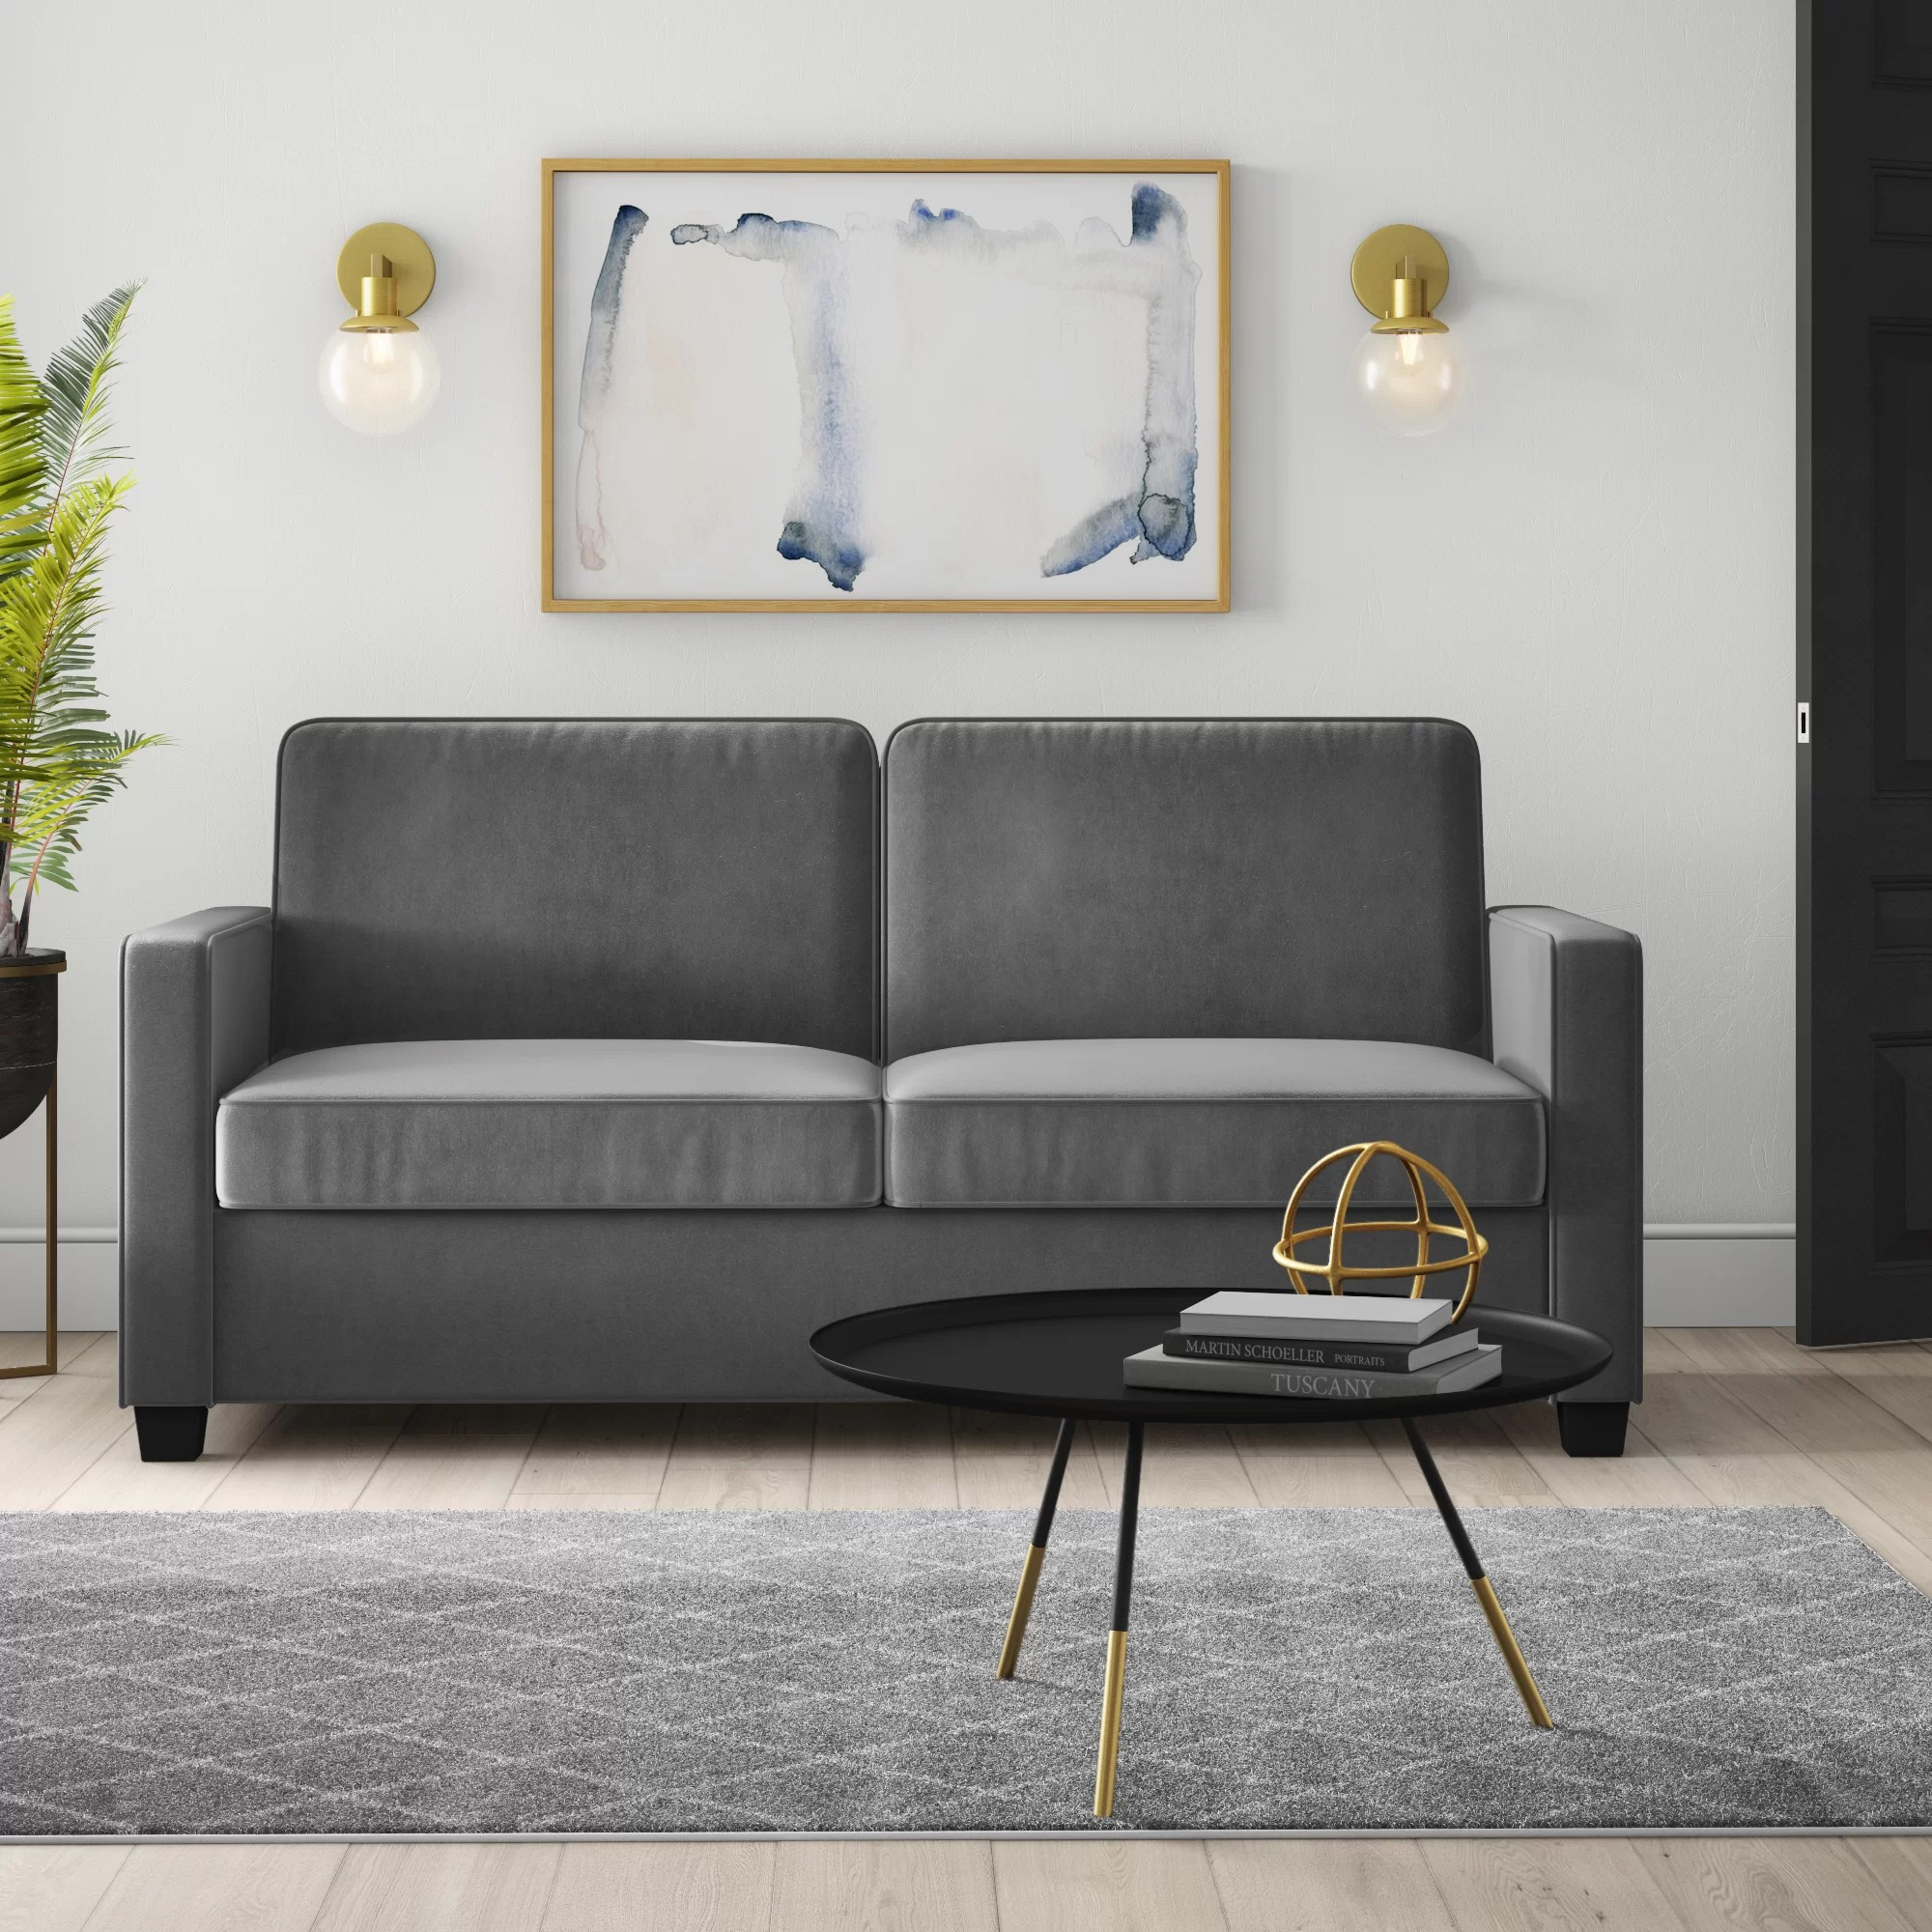 Large Sofa Beds Everyday Use Cabell Sofa Bed